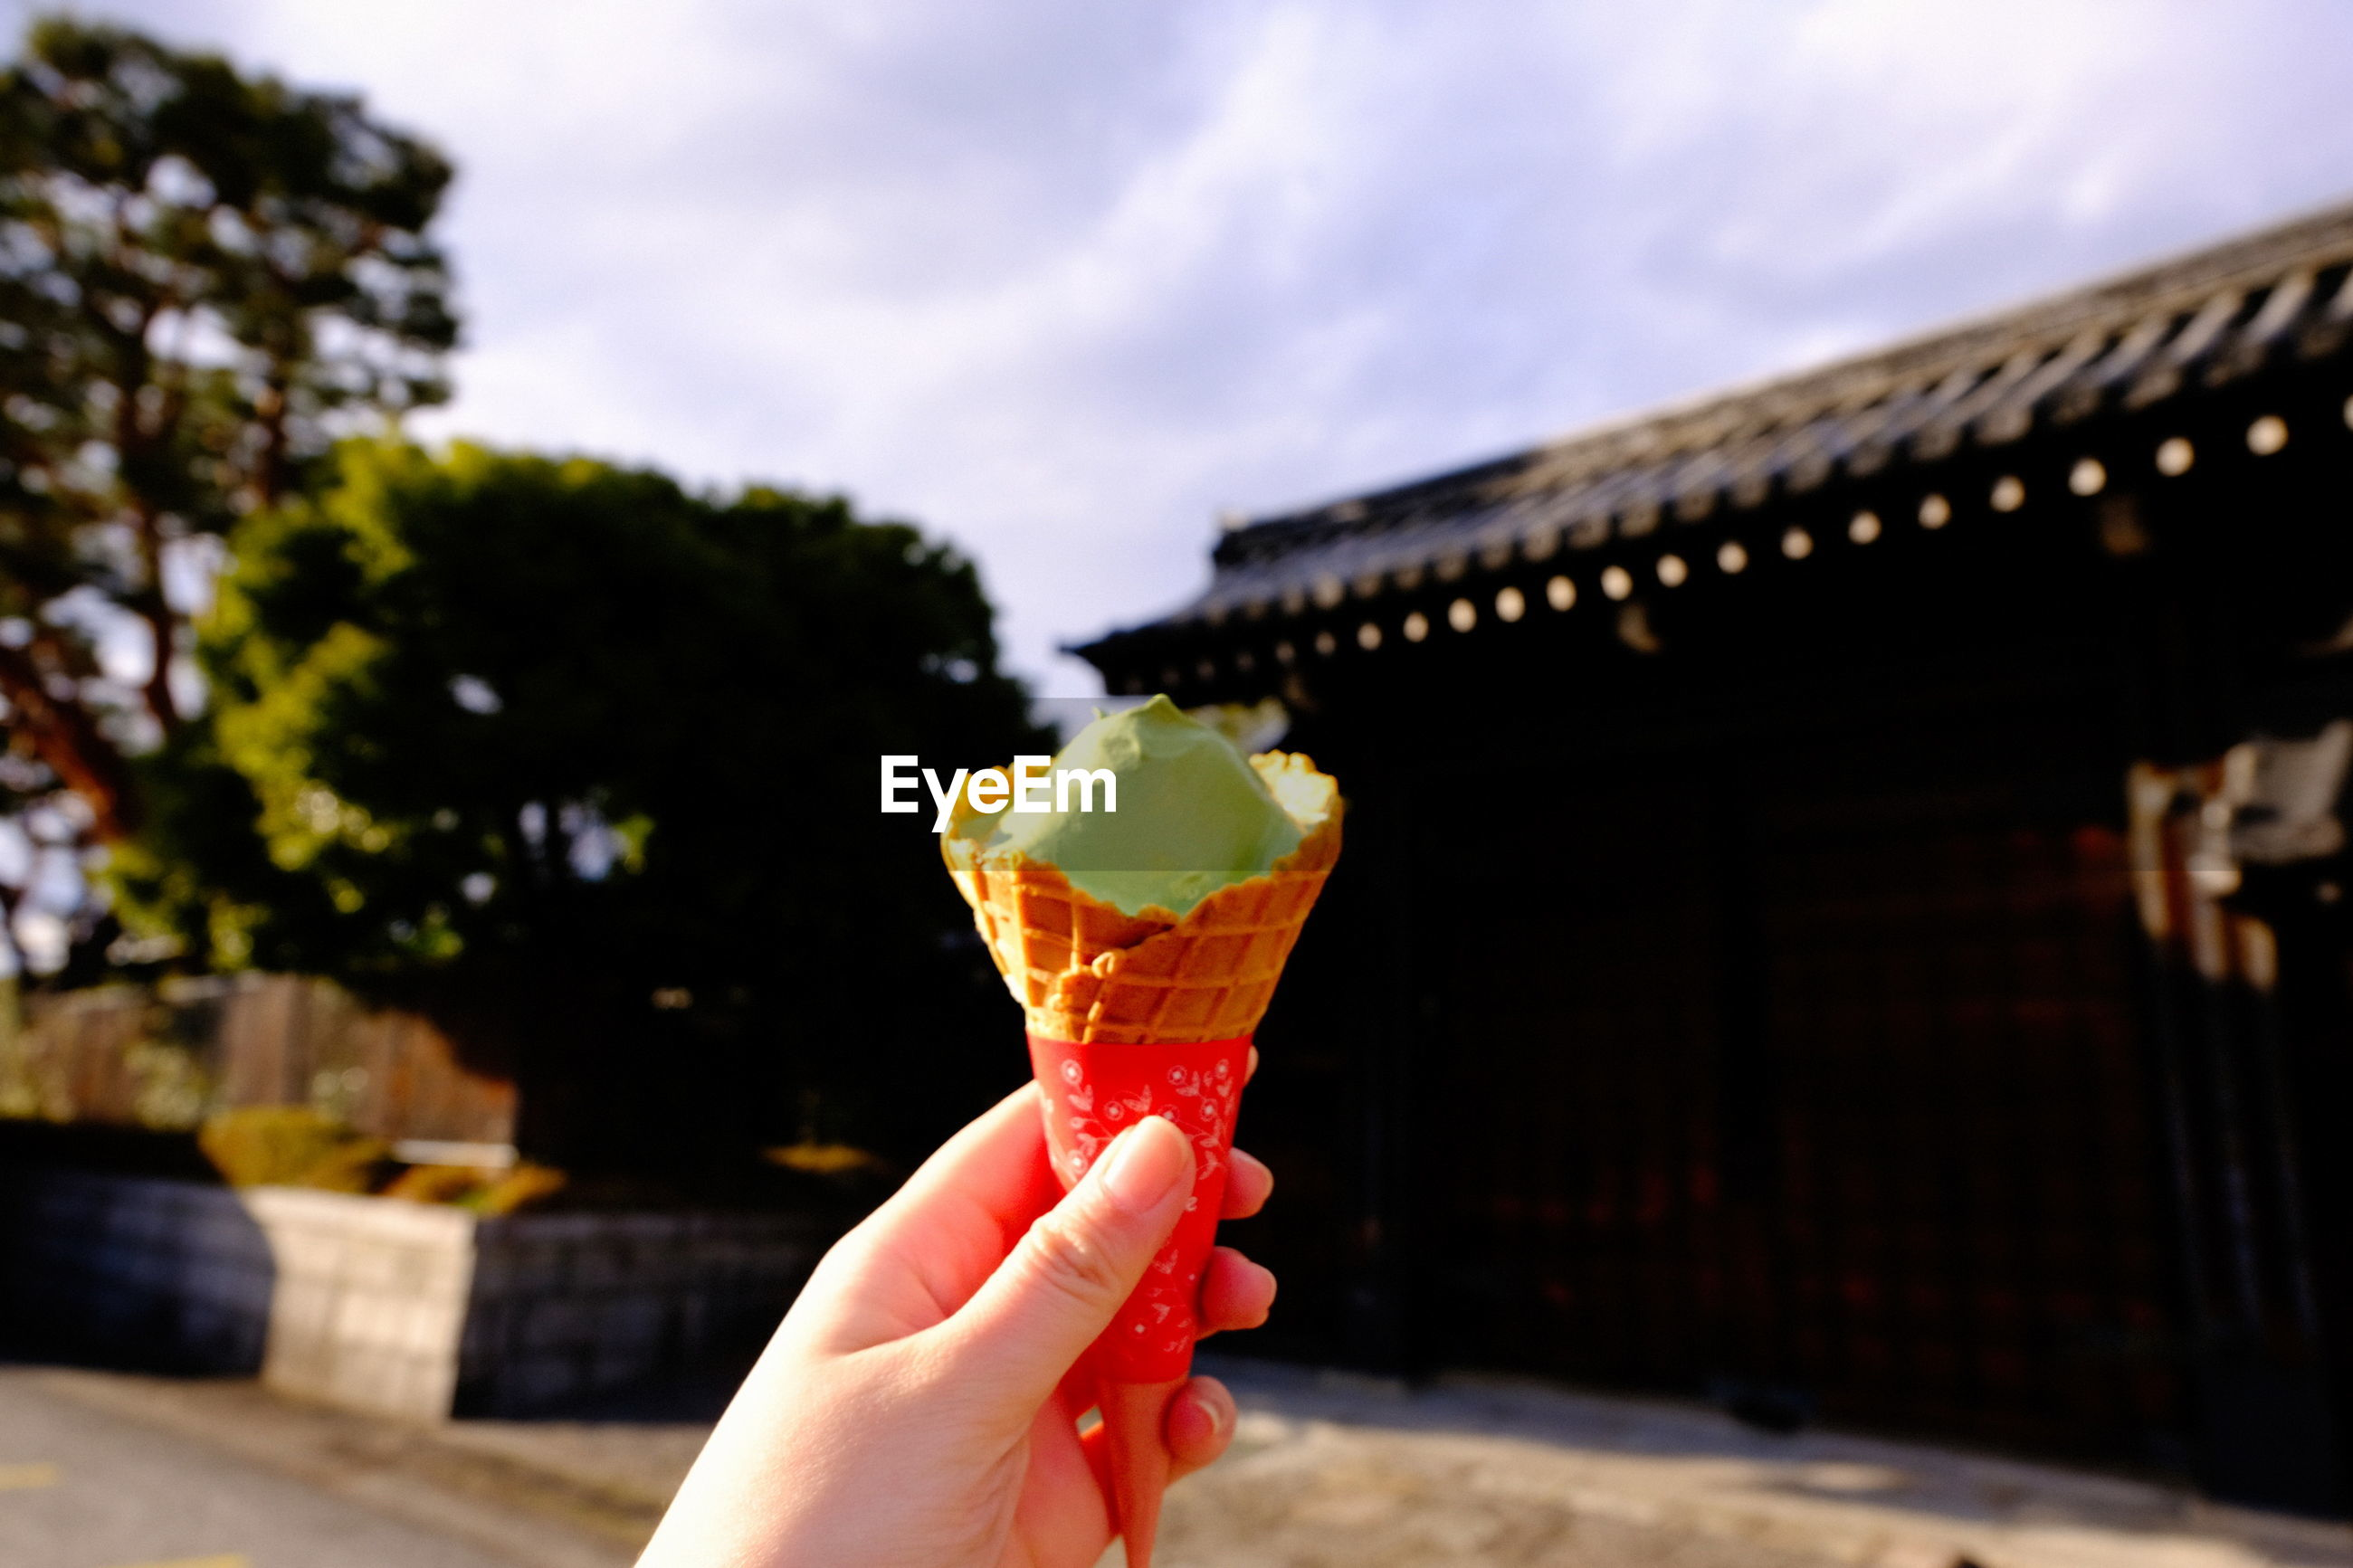 Cropped hand having ice cream cone against built structure